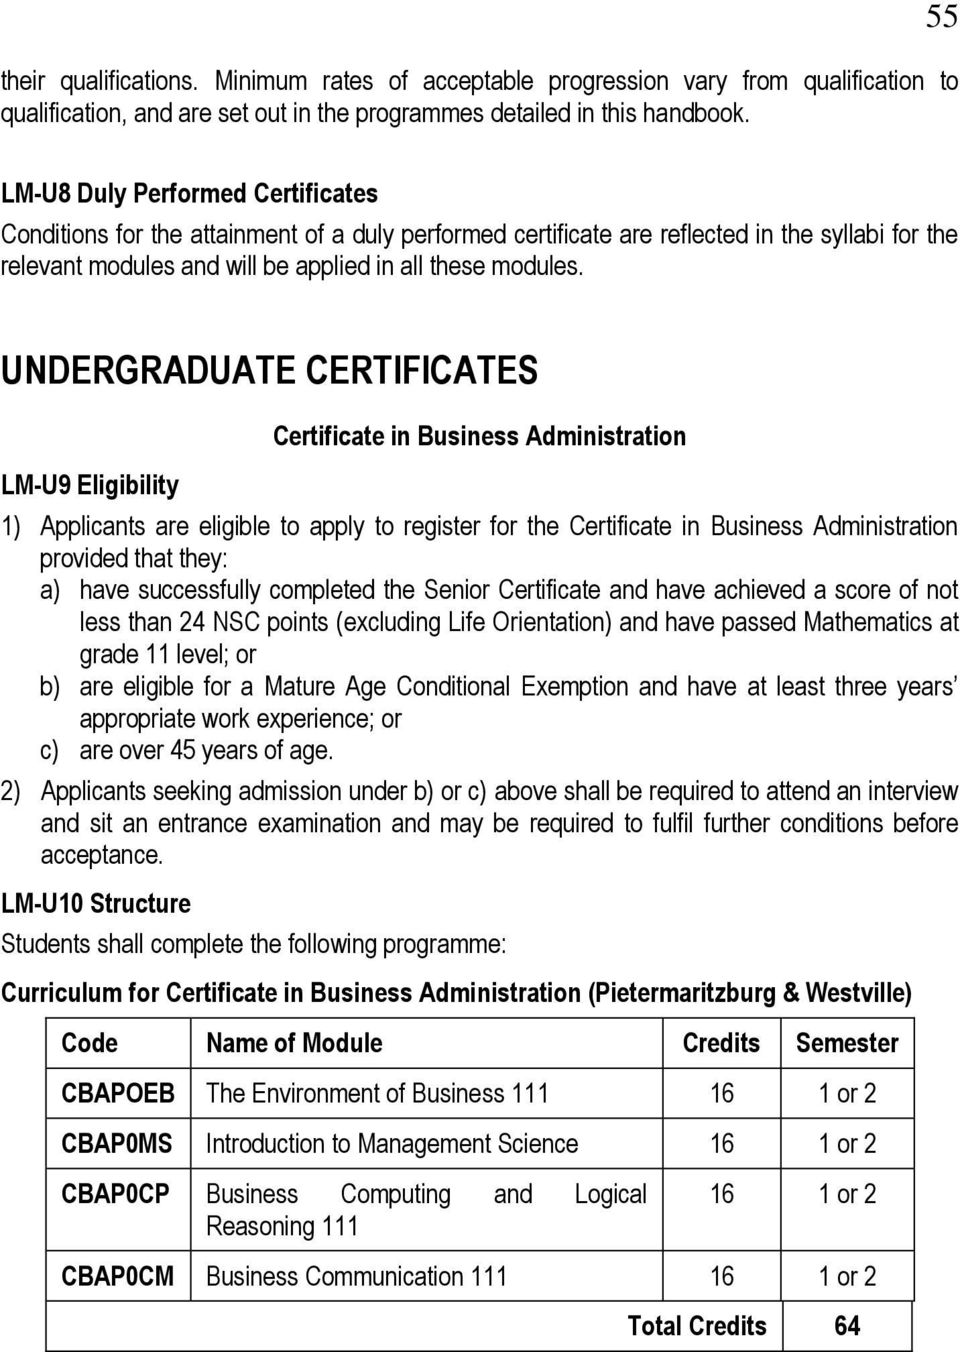 UNDERGRADUATE CERTIFICATES LM-U9 Eligibility Certificate in Business Administration 1) Applicants are eligible to apply to register f the Certificate in Business Administration provided that they: a)